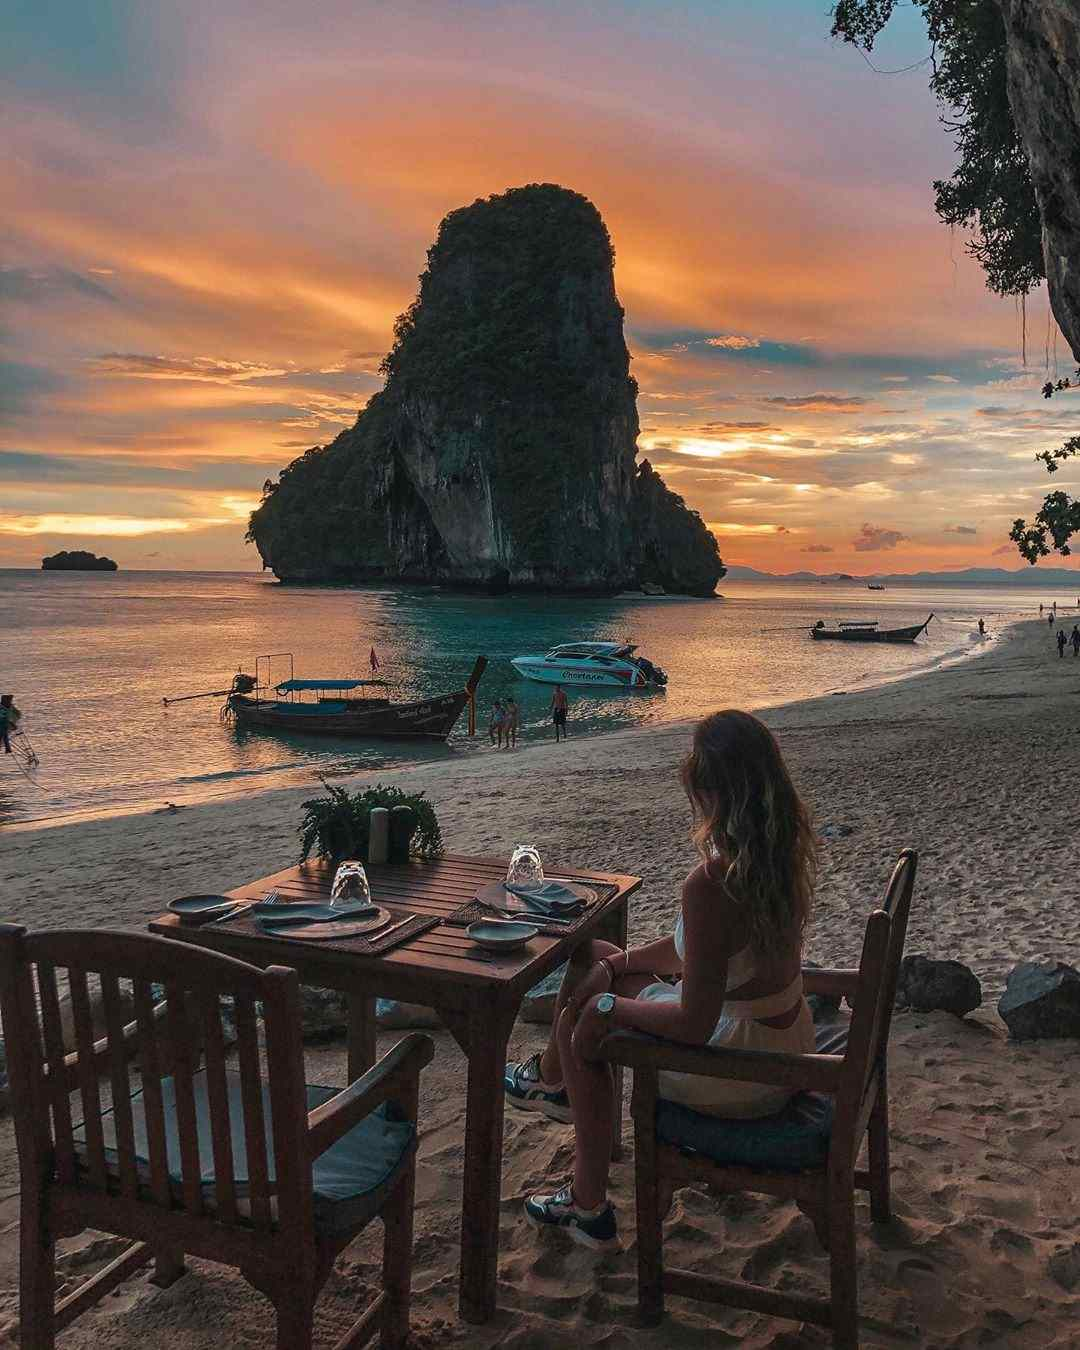 The Grotto Restaurant op Phra Nang Beach